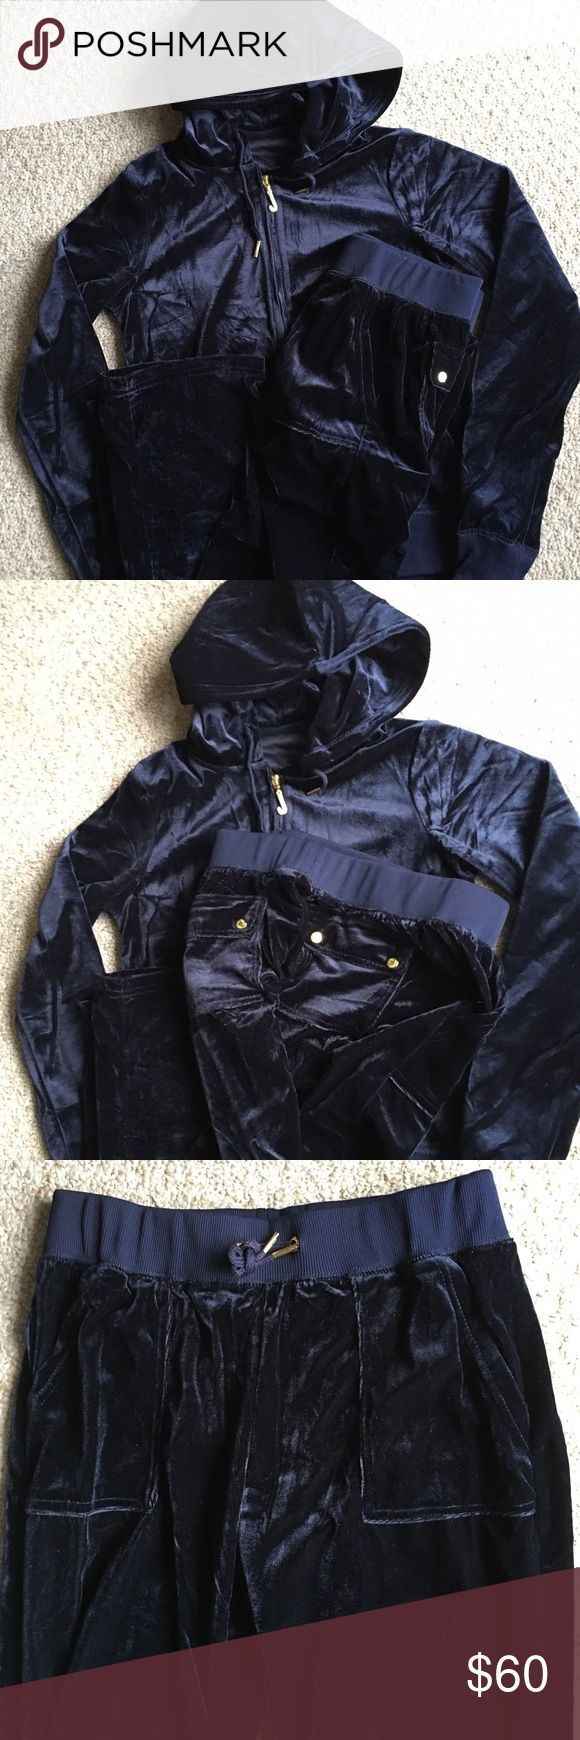 New Juicy Couture Velour Hoodie Tracksuit L Brand new with tags. Velour Zippered Hoodie with Matching bottom. Midnight blue with snap closure back pockets. Size: L Juicy Couture Tops Sweatshirts & Hoodies